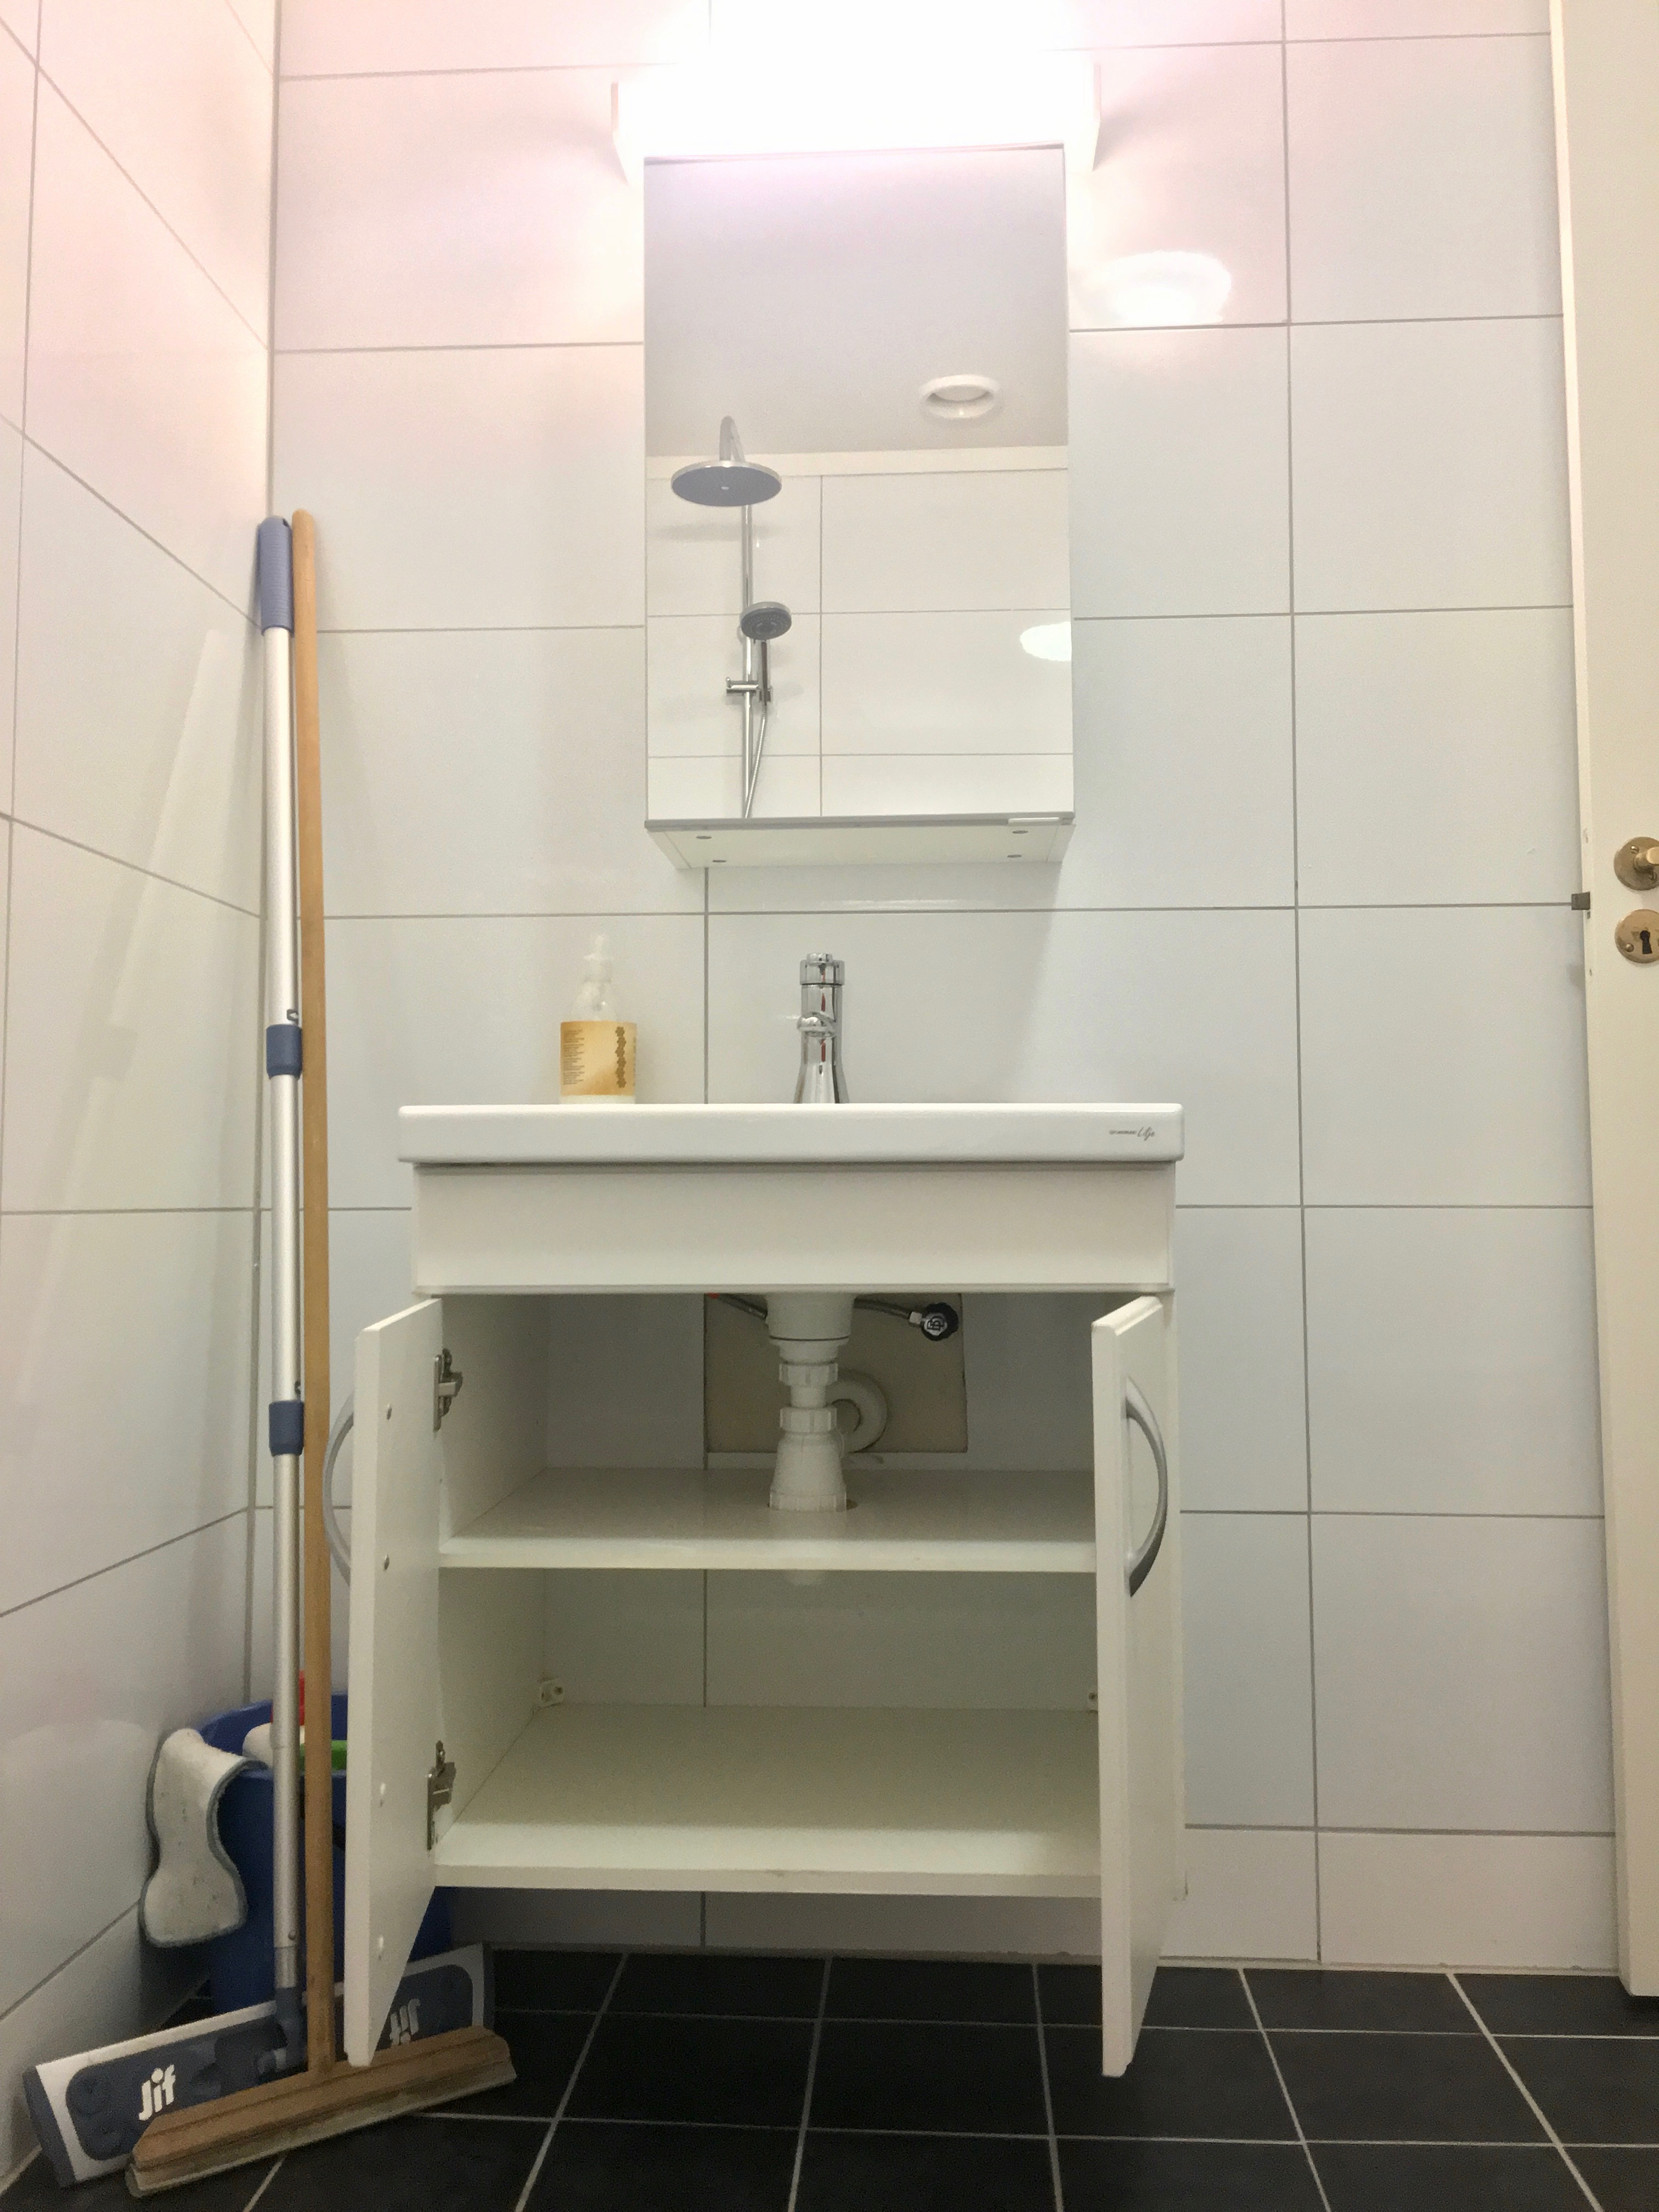 File Toilet Hand Wash Sink Mirror Etc In A Bathroom Small